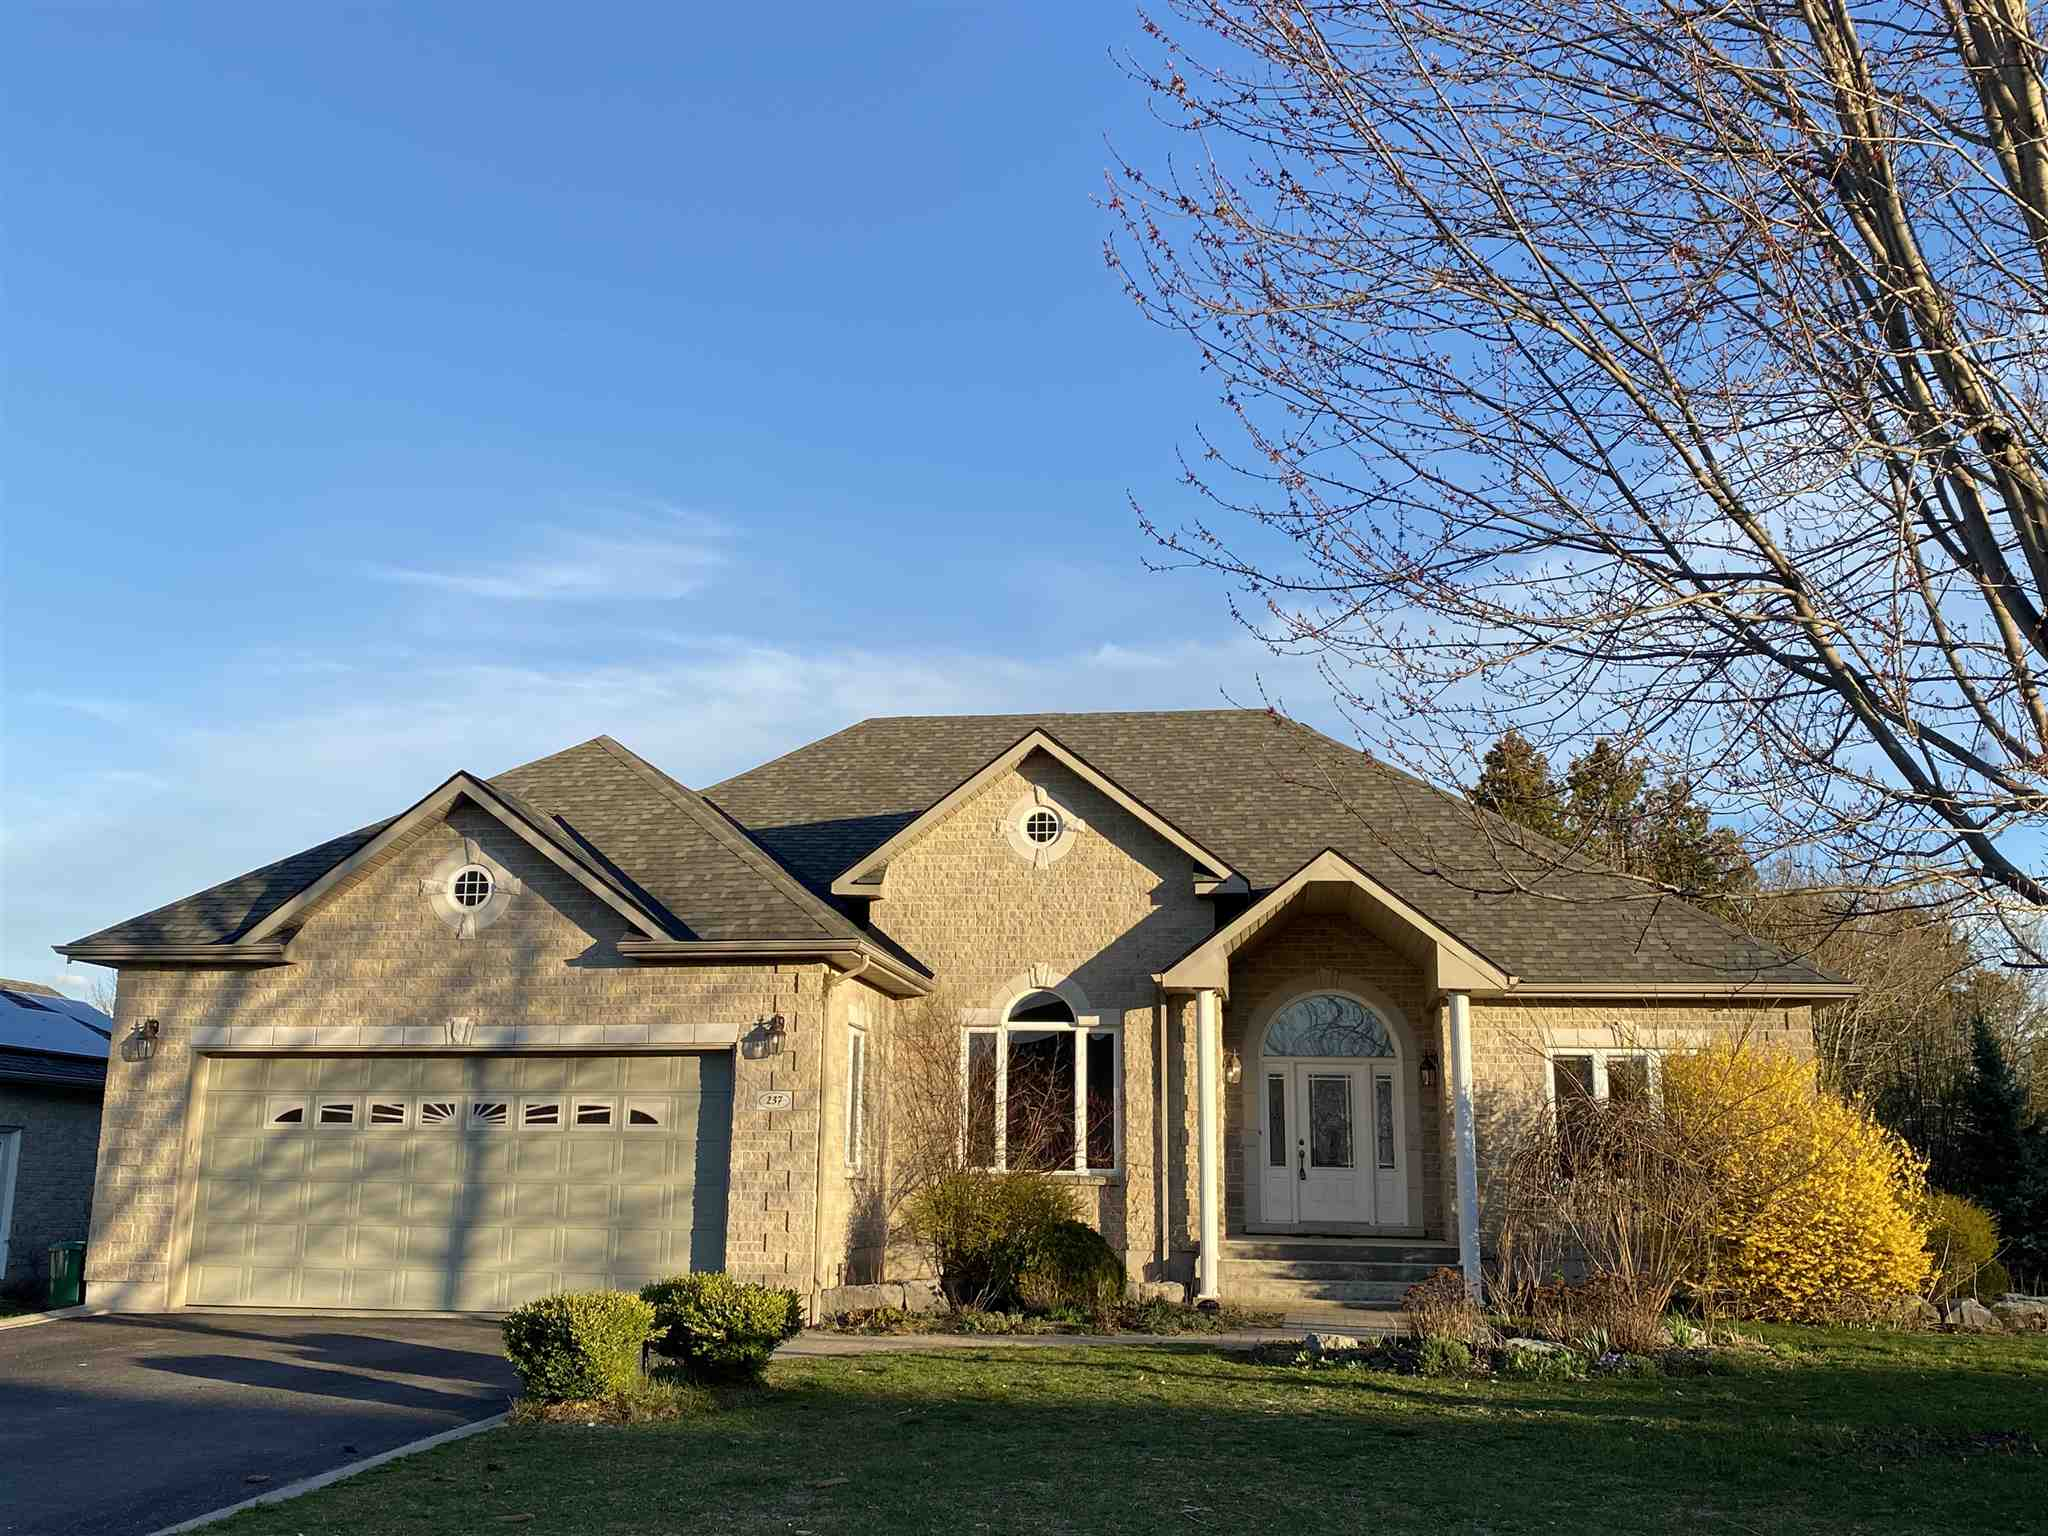 237 Smuggler's Cove Drive, Kingston Ontario, Canada